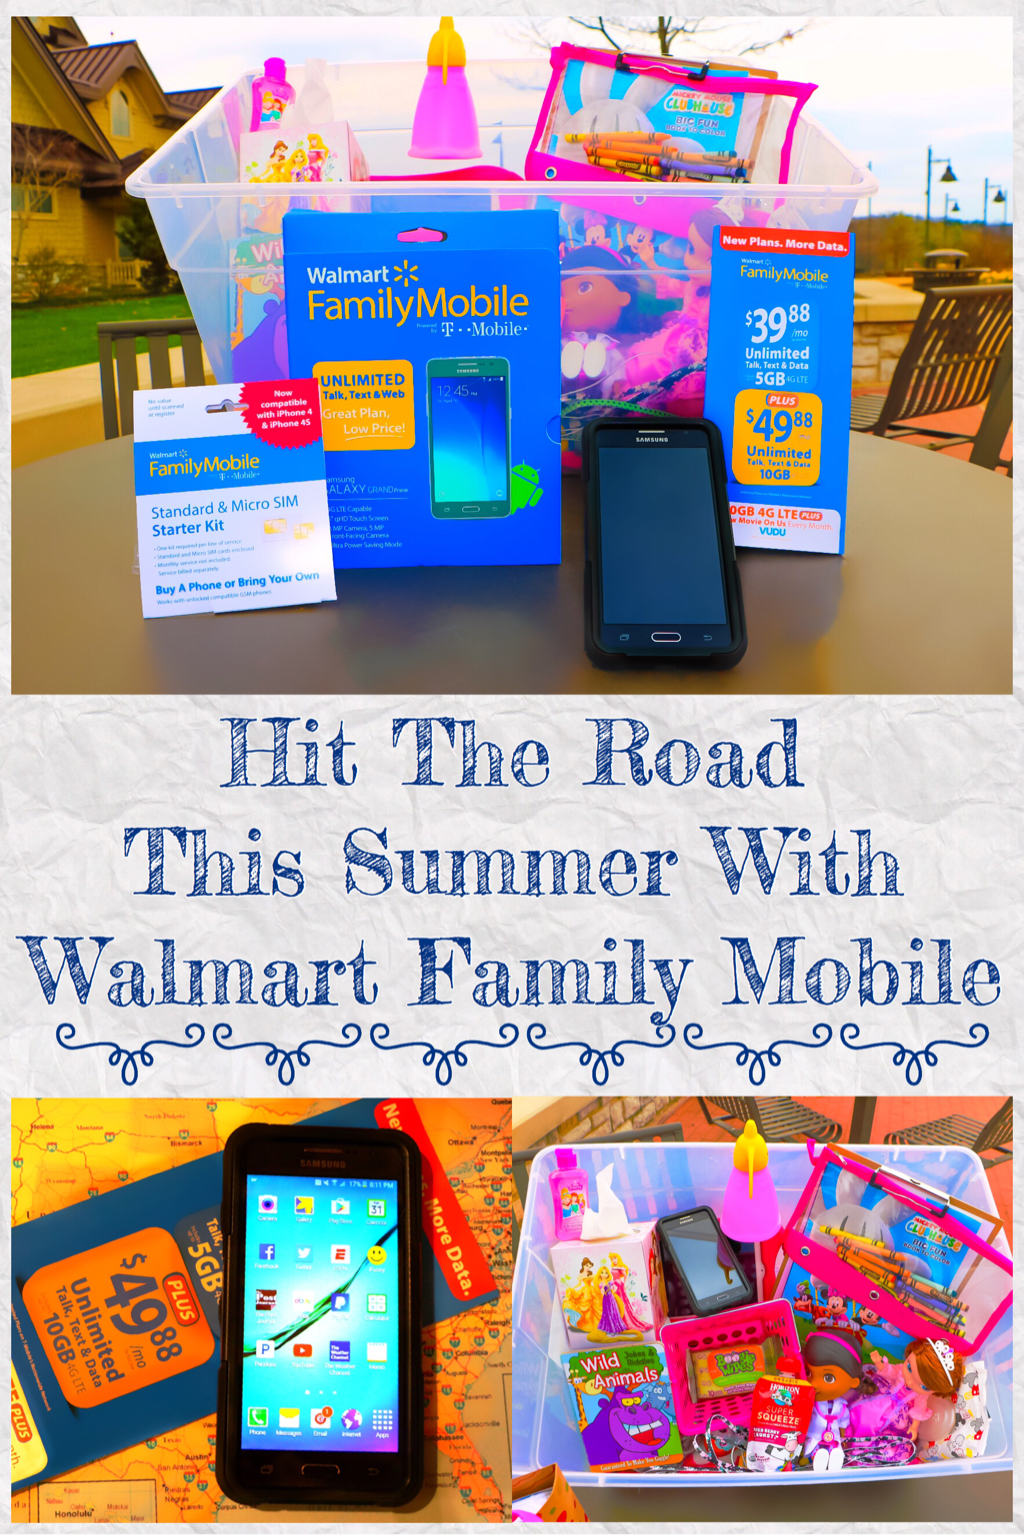 HIT THE ROADS THIS SUMMER WITH WALMART MOBILE